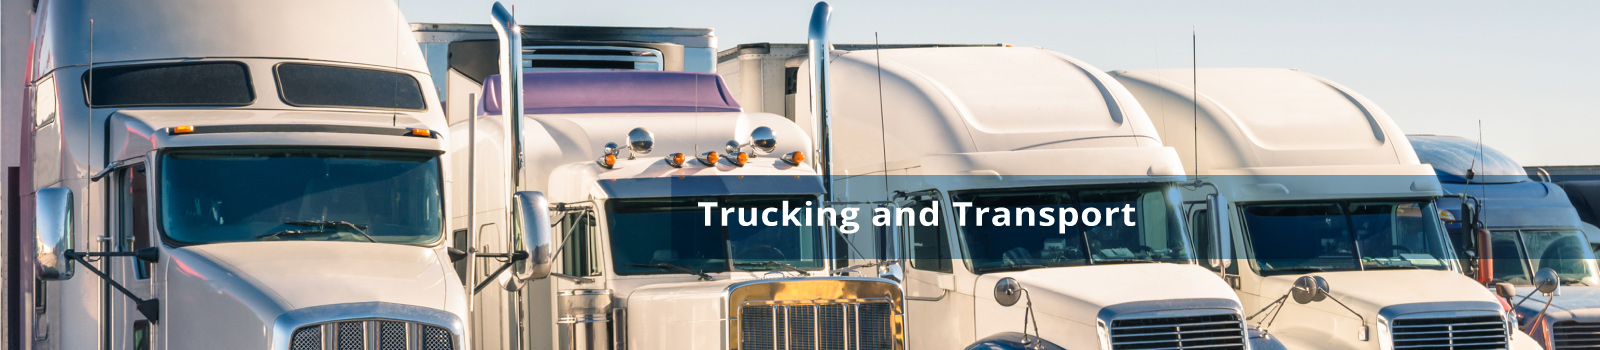 Trucking and Transport